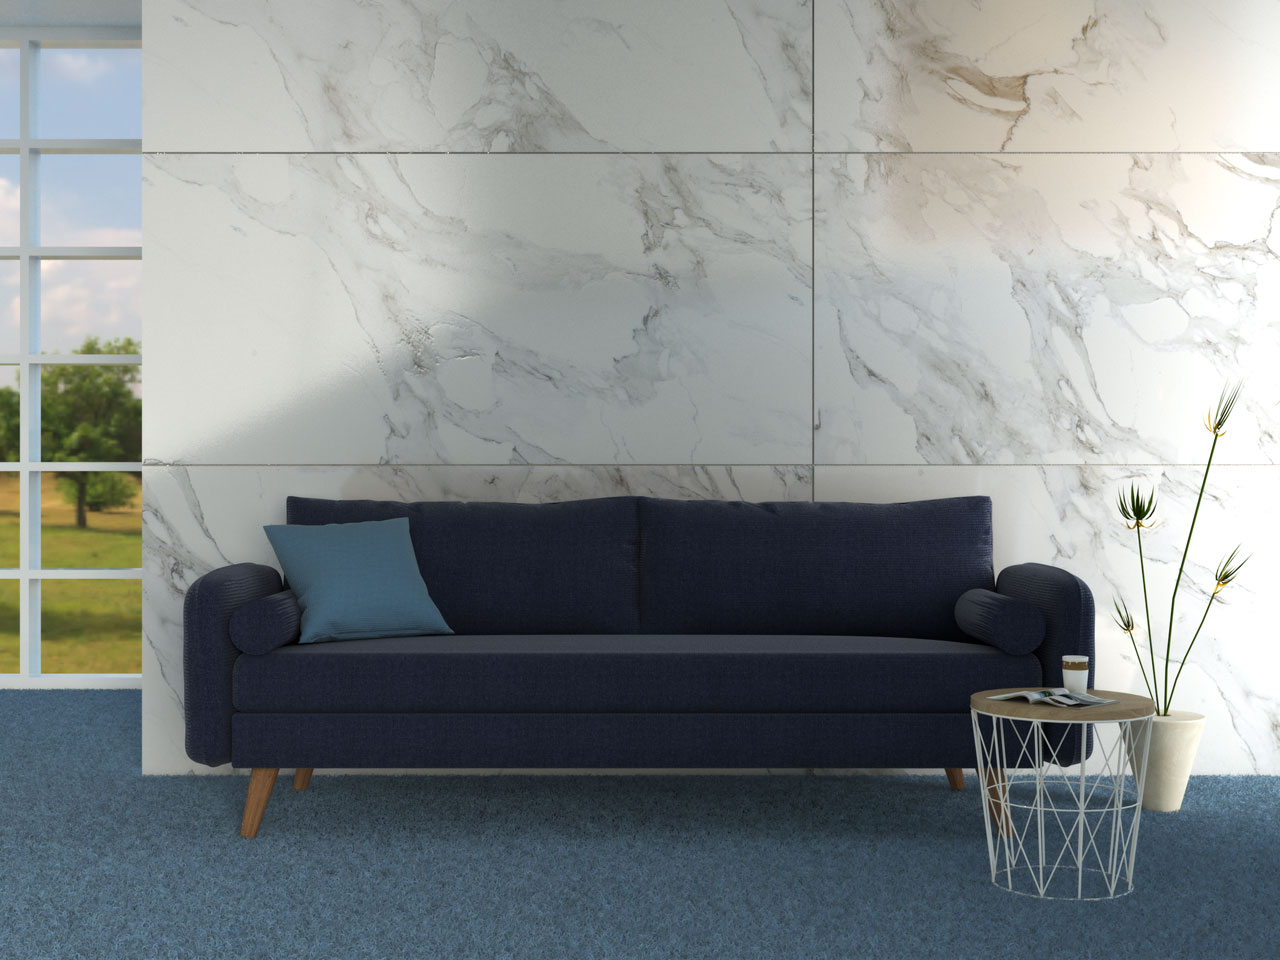 Navy couch with blue carpet flooring